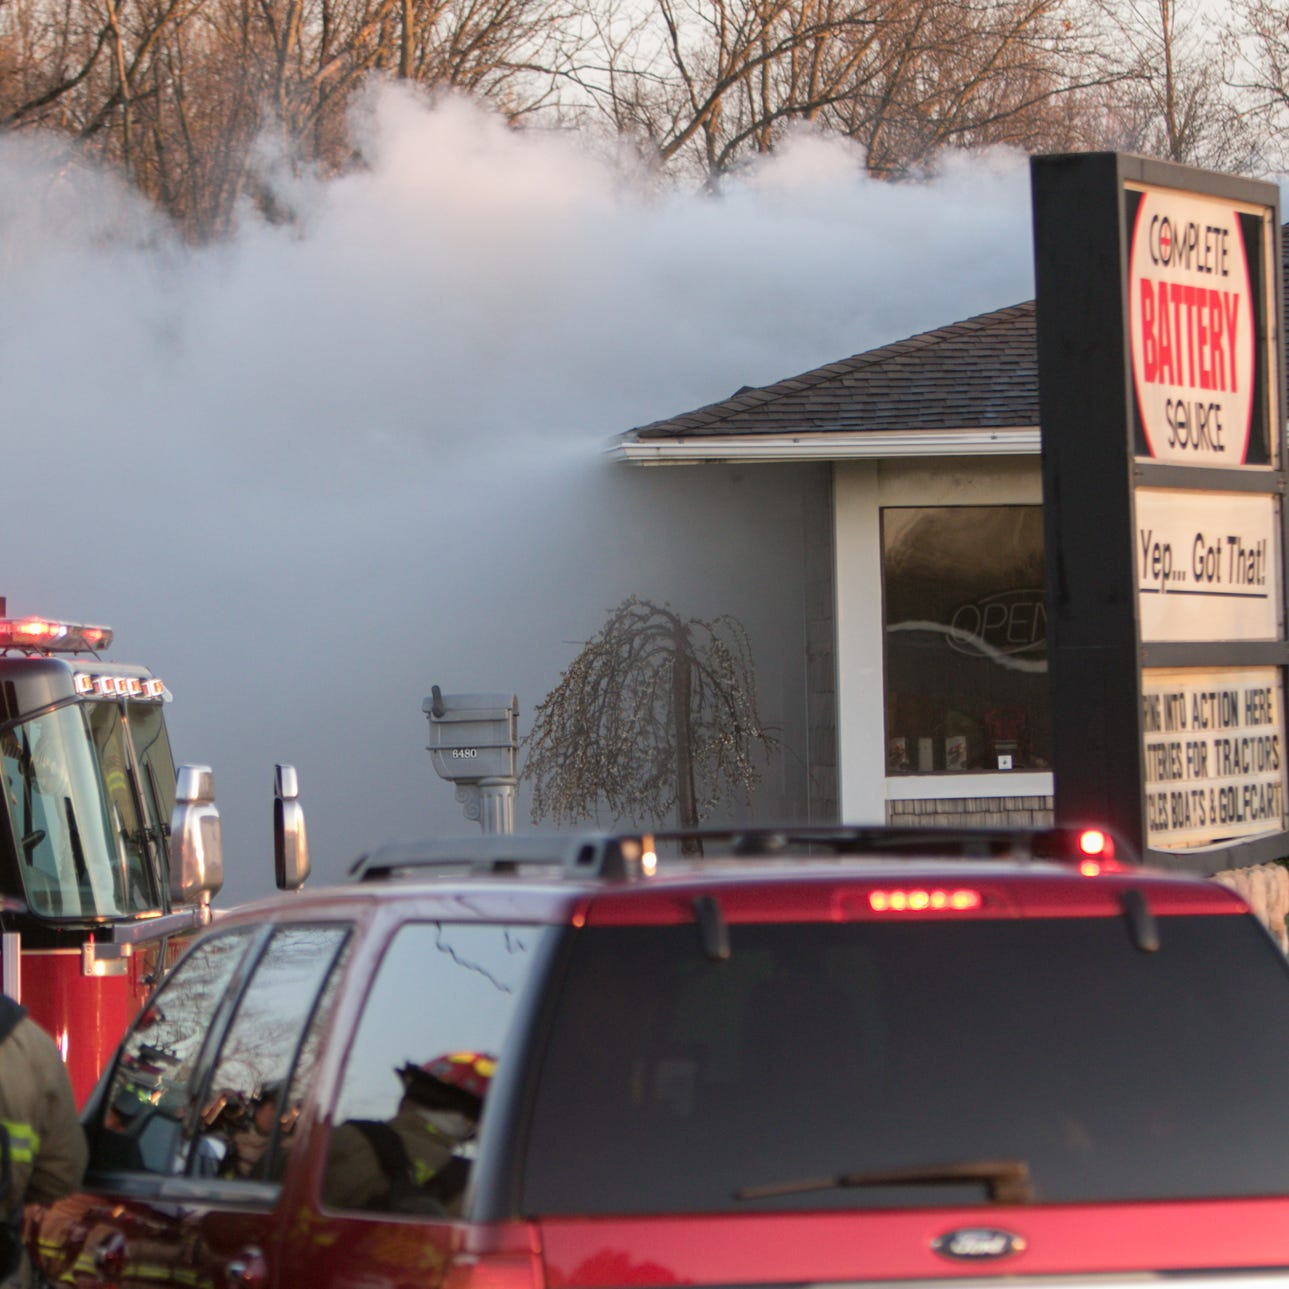 Genoa Township's Complete Battery Source damaged after fire destroys roof